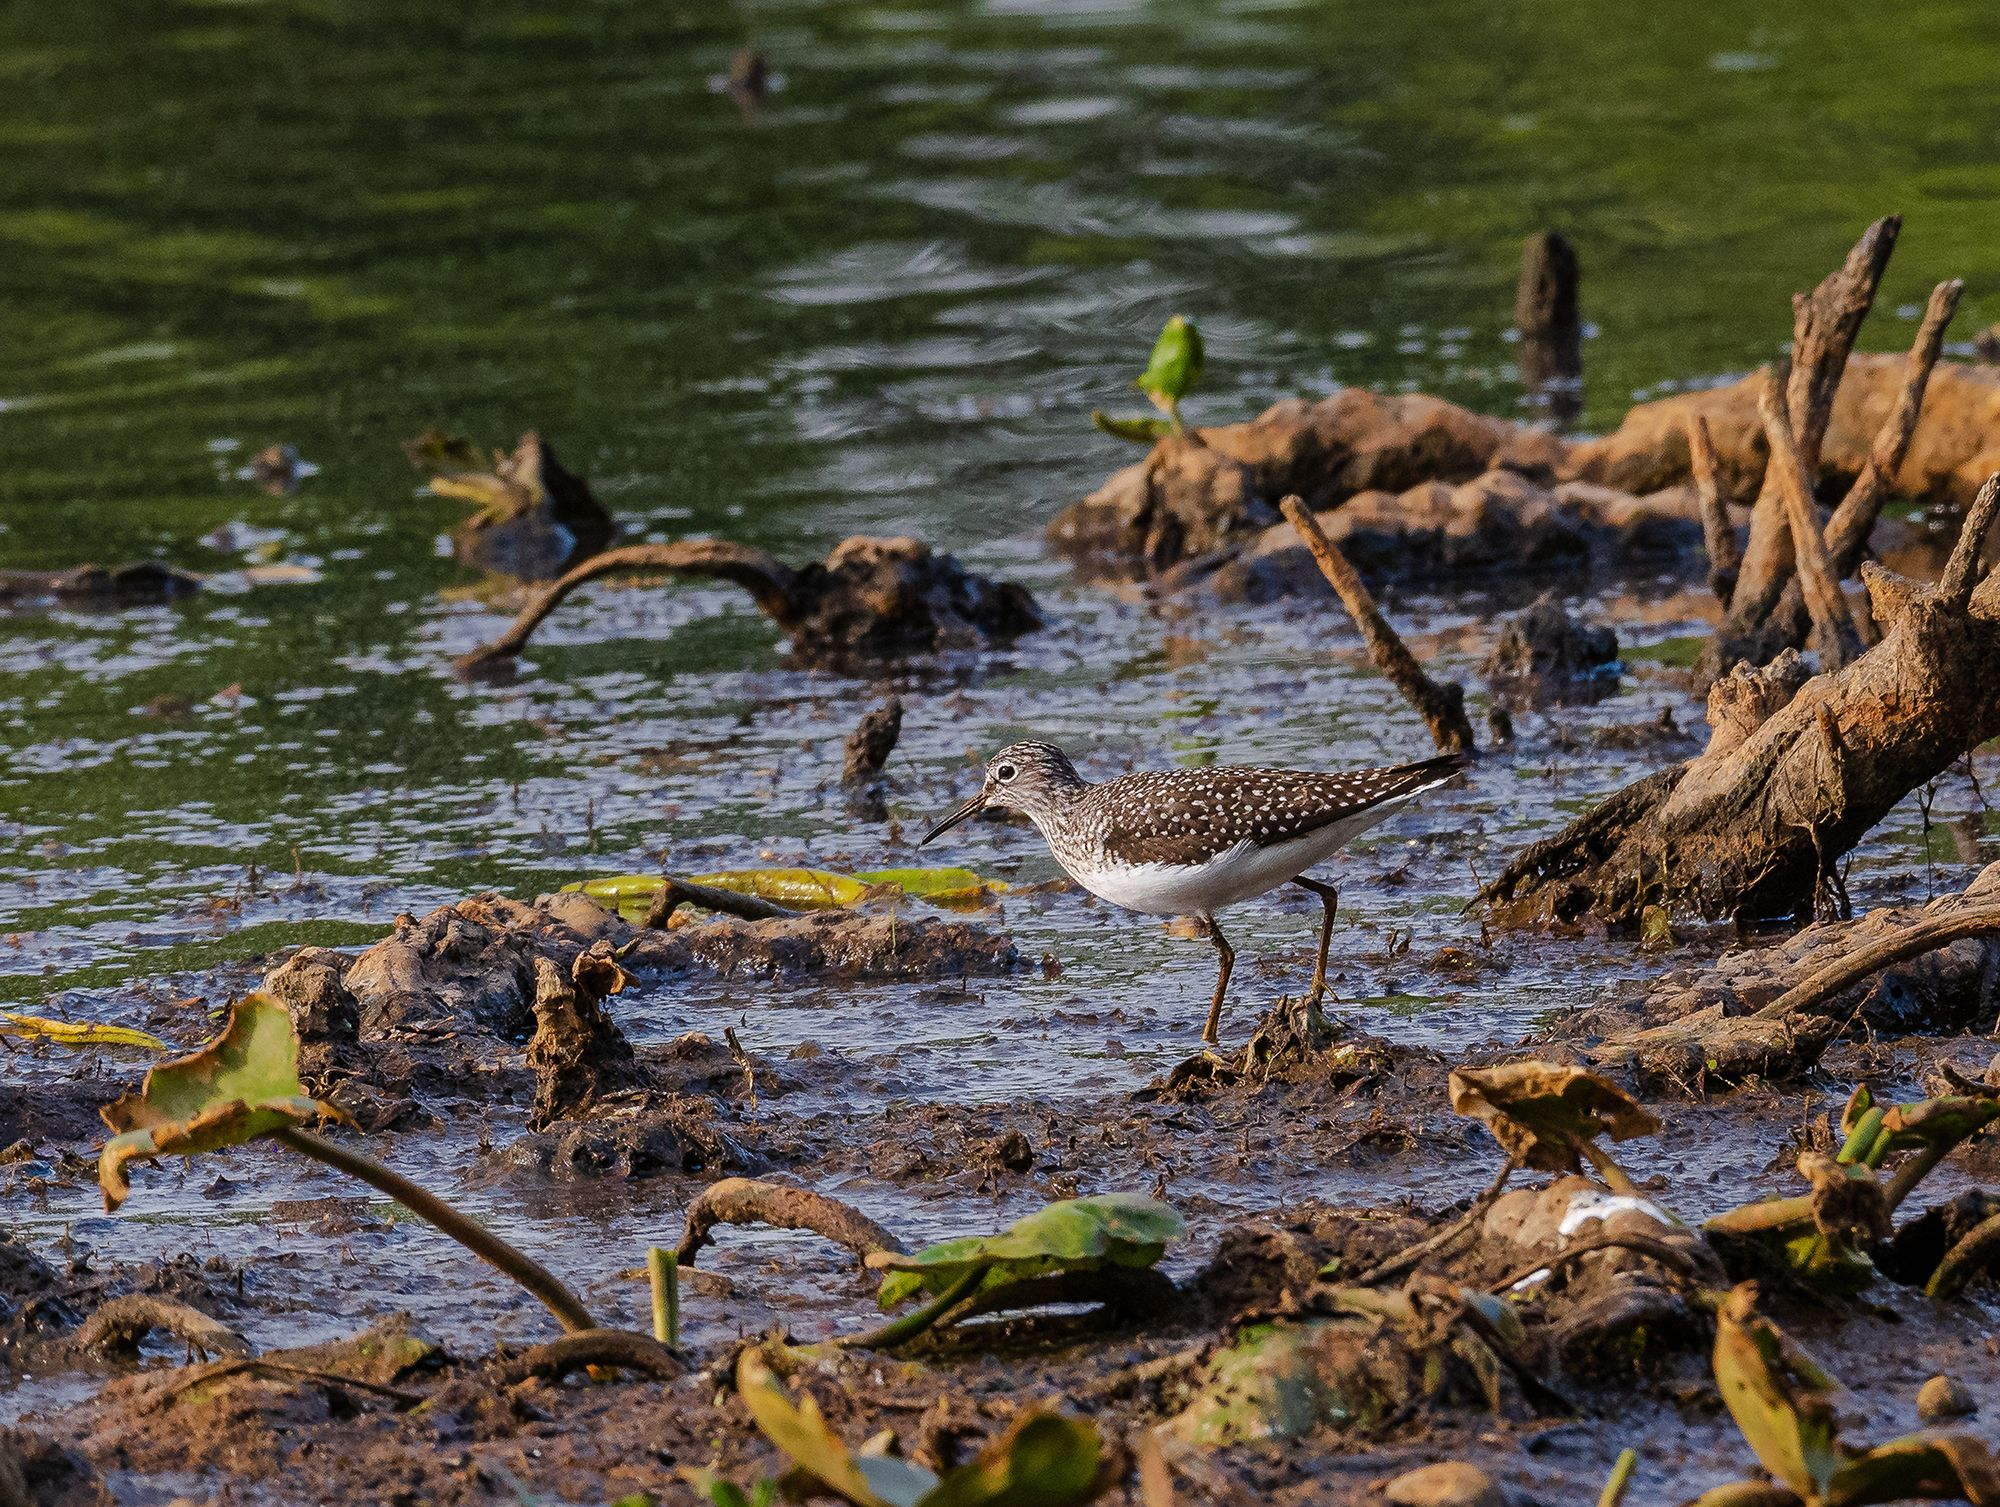 A small brown and white shorebird forages at the edge of a lake. The bird has brown wings dotted with white feathers. The water laps against the muddy shore.